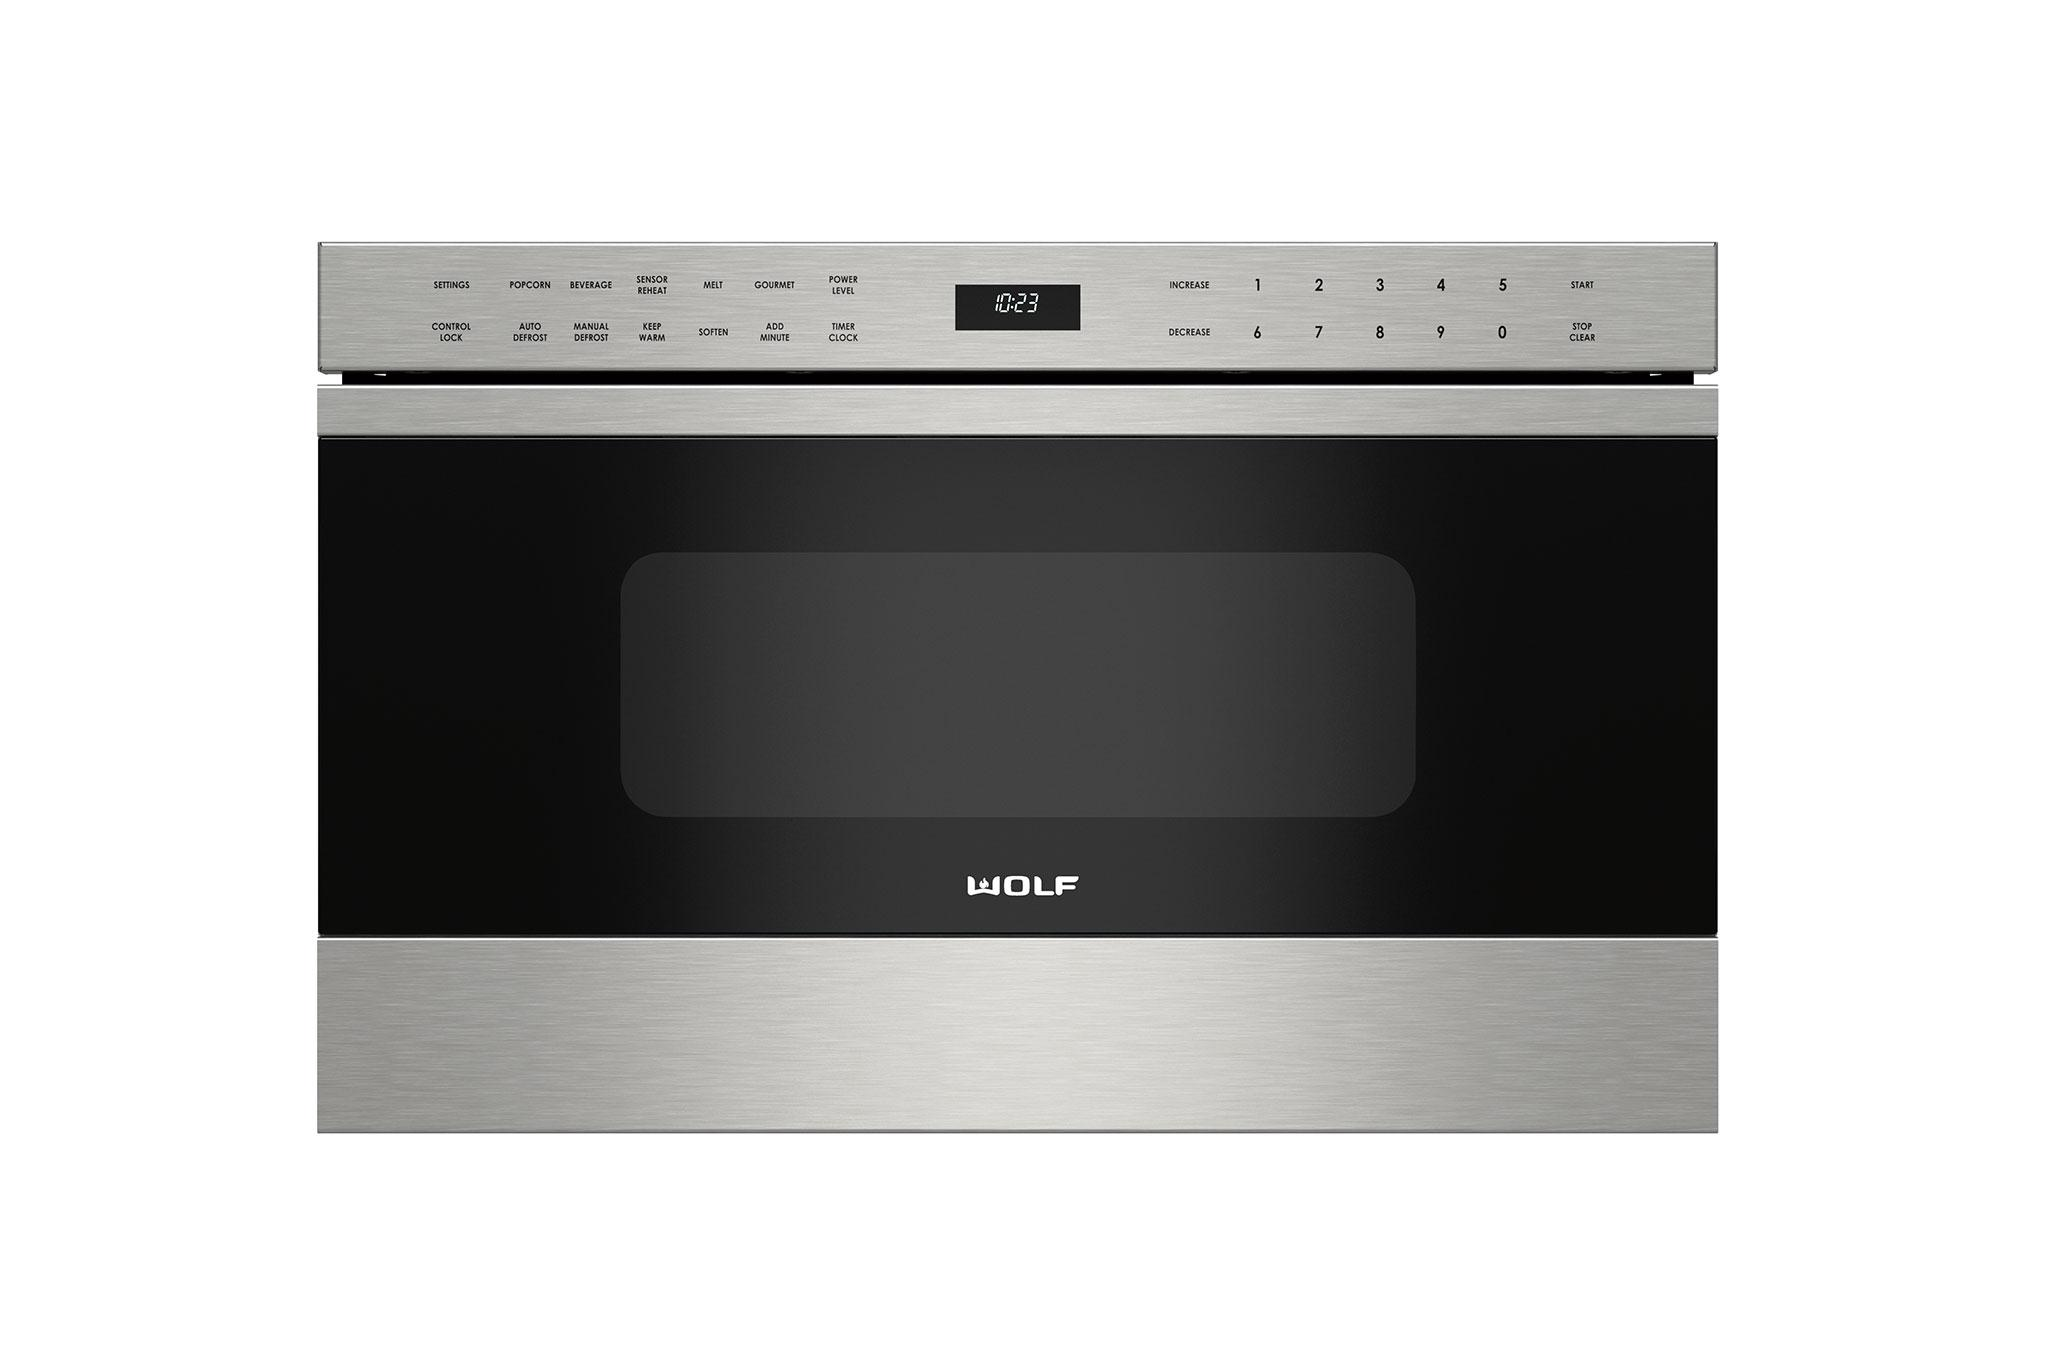 Wolf Model Md24tes Caplan S Appliances Toronto